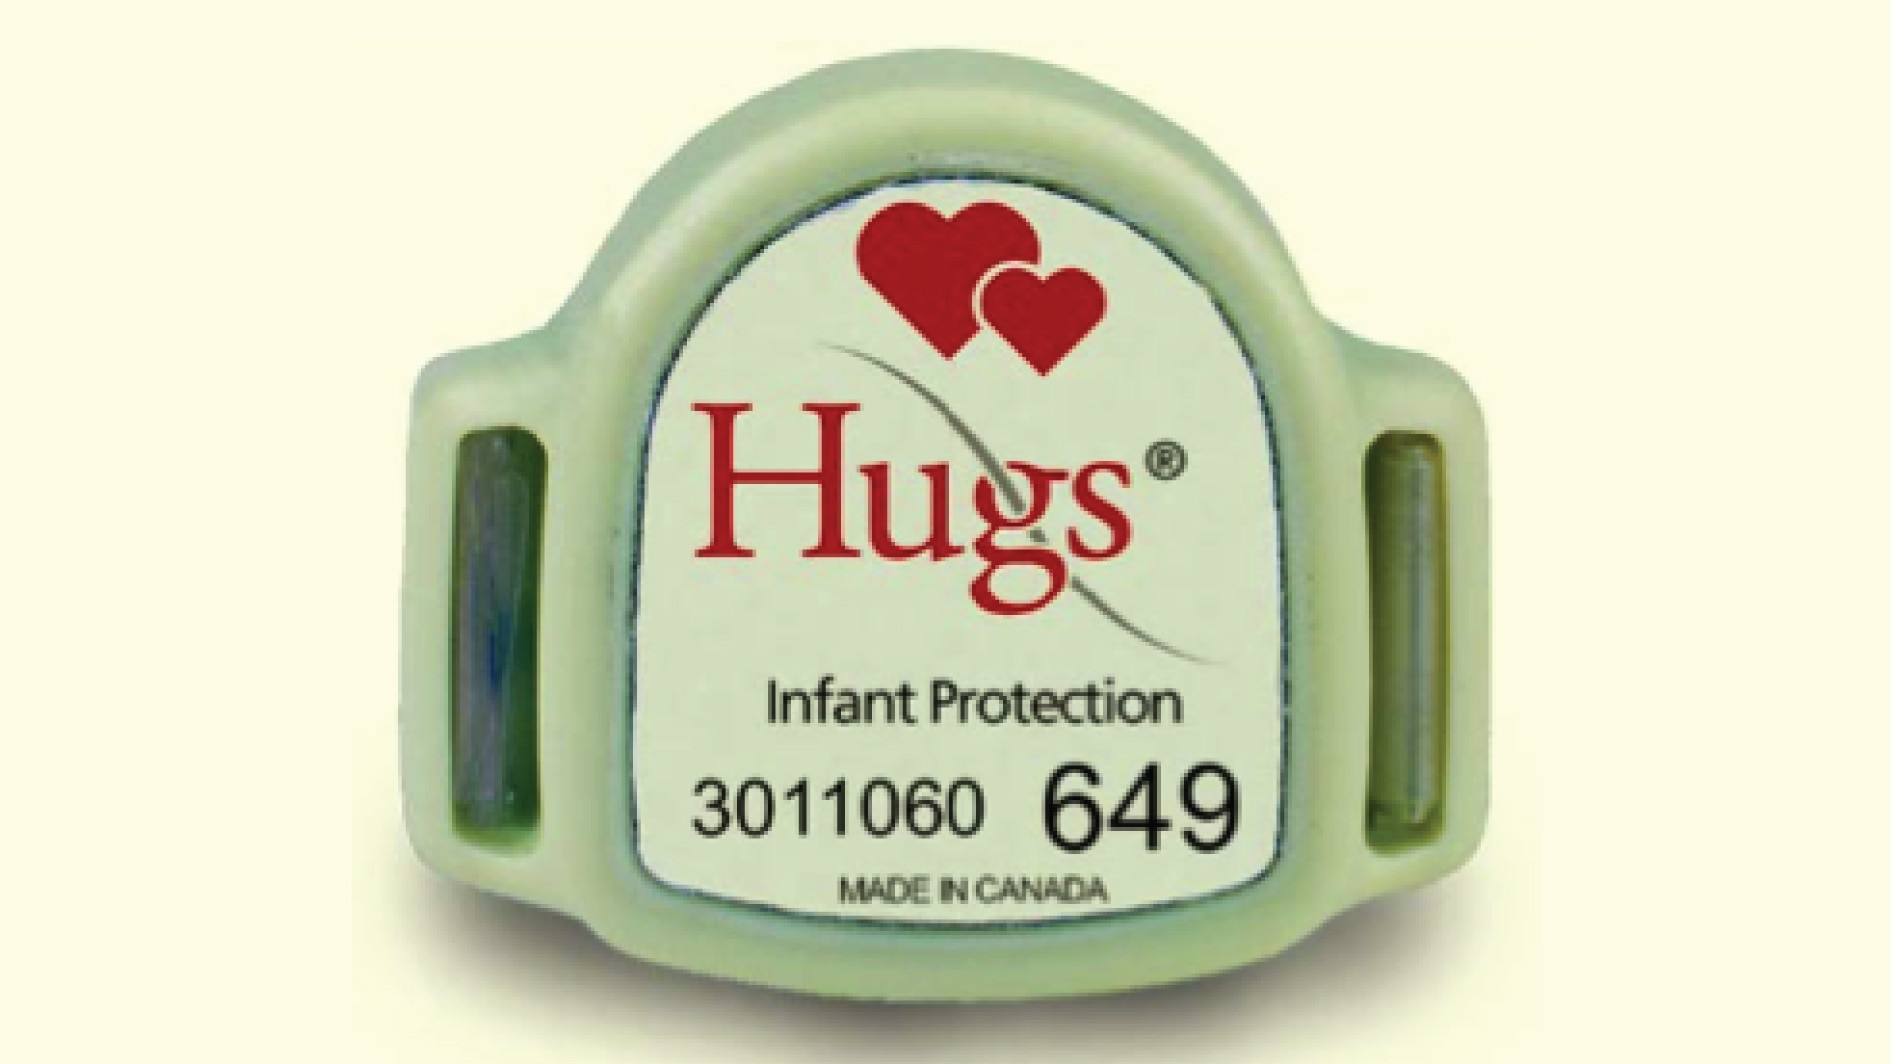 The Hugs tag features an RFID sensor that alerts hospital authorities if the wearer approaches an exit.